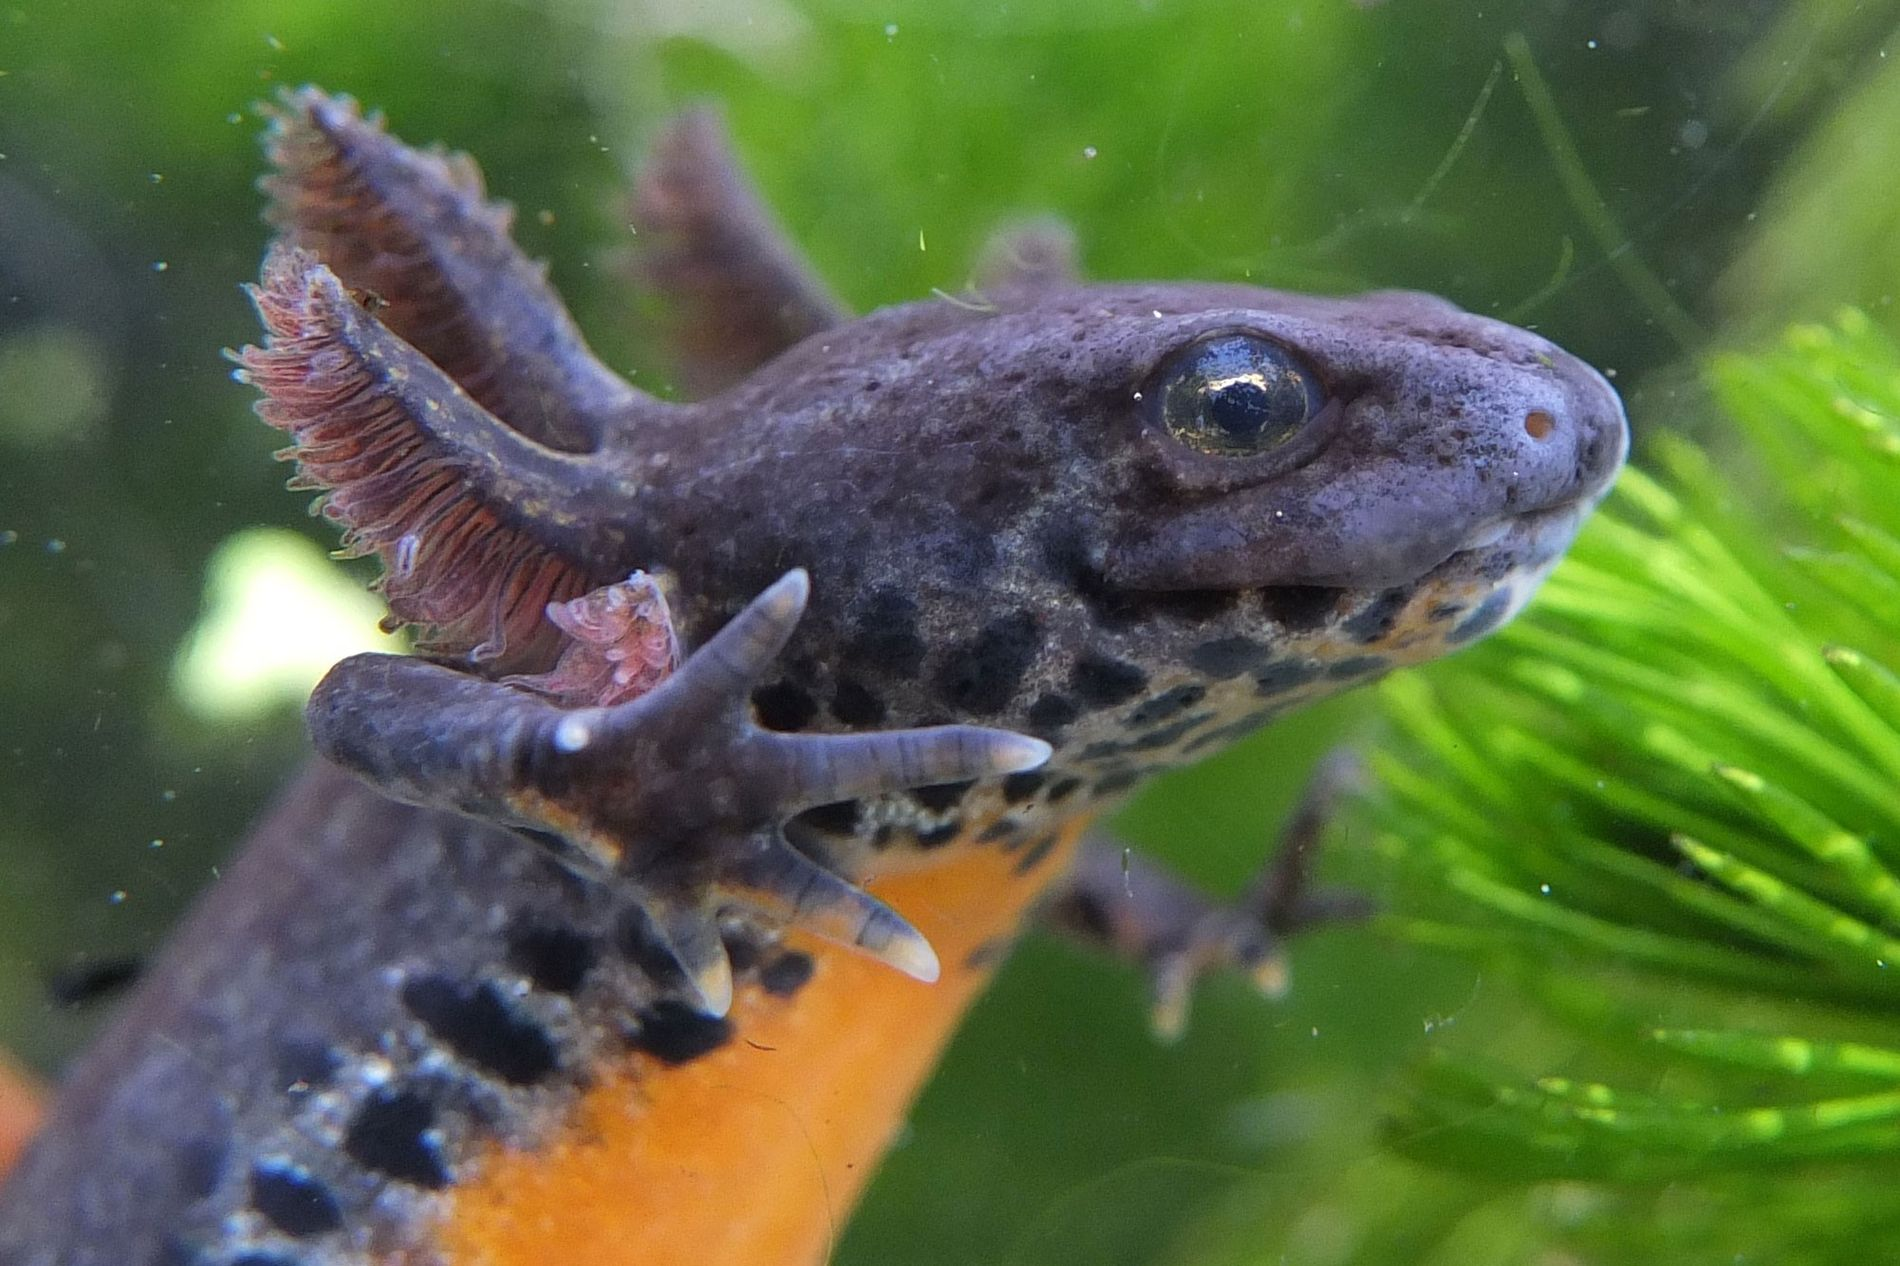 Paedomorphosis allows alpine newts like this female to hold onto aquatic adaptations and delay metamorphosis for months, years, or a lifetime.